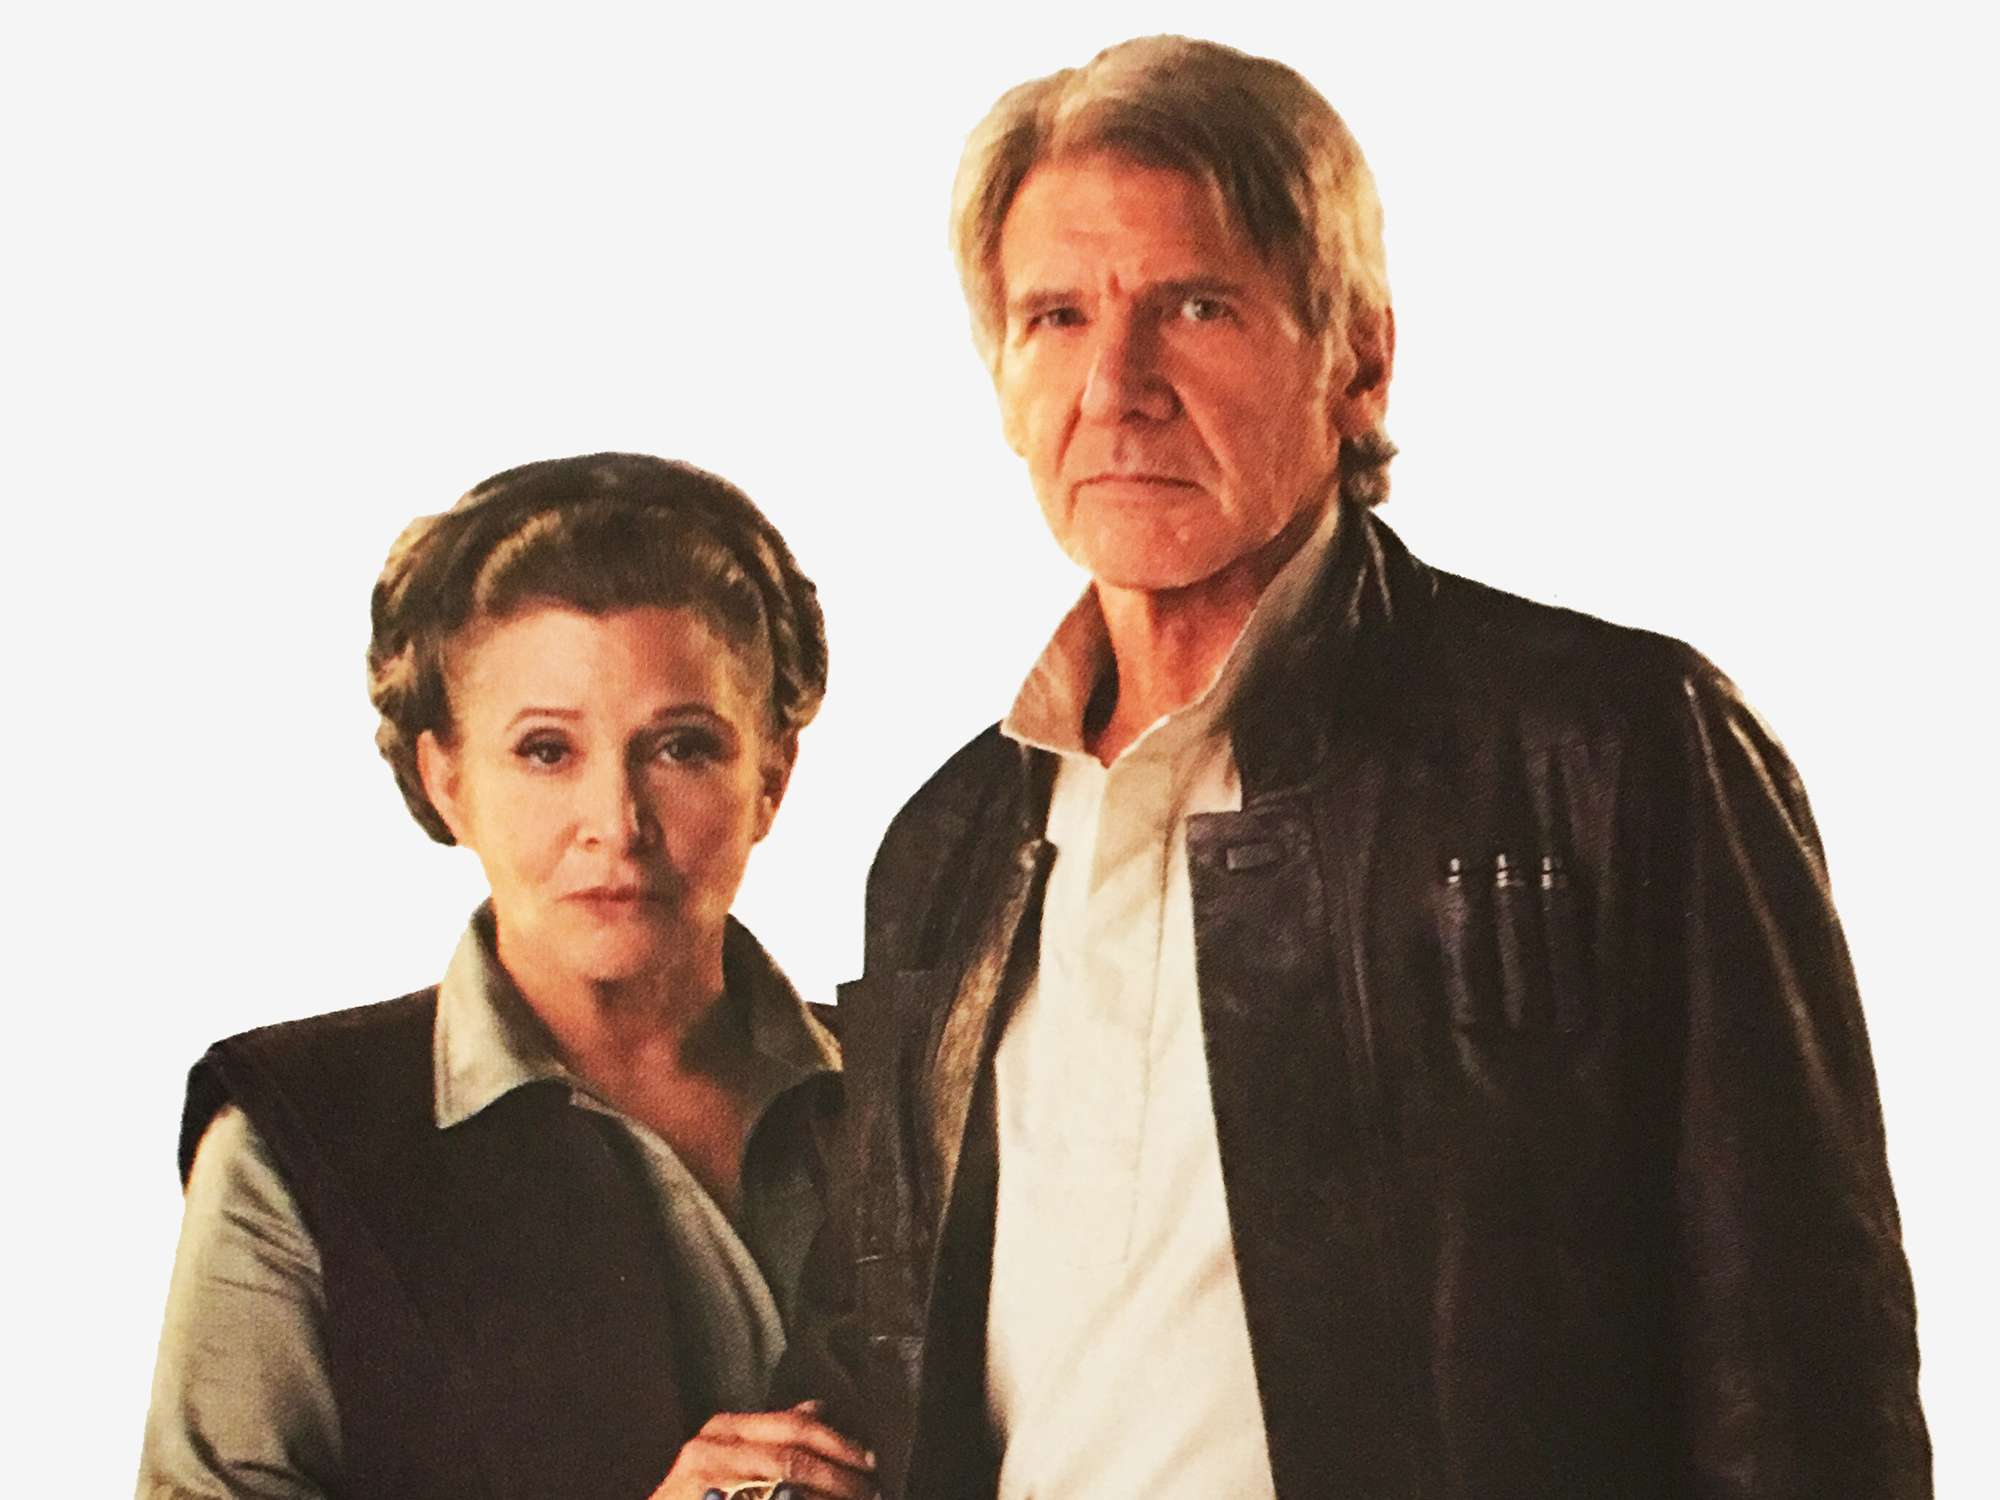 The Force Awakens: 10 Revelations that Weren't in the Movie